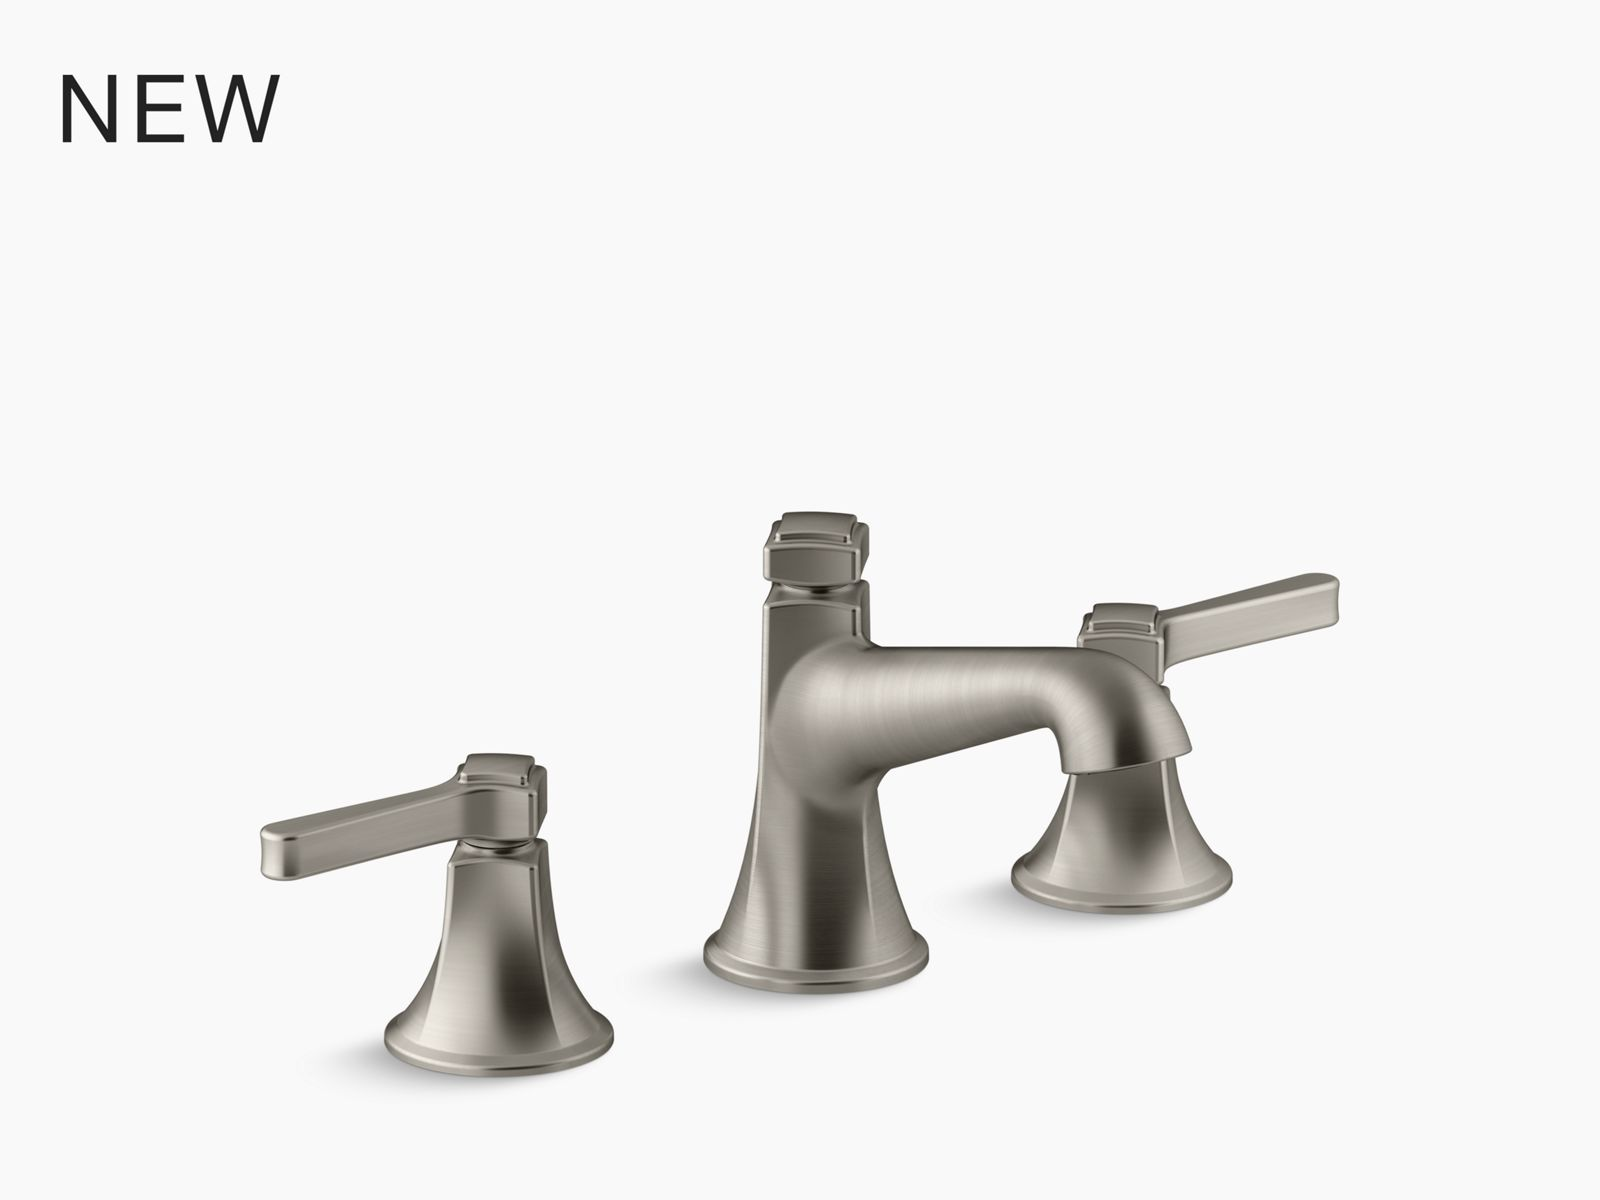 knoxford double lever handle service sink faucet with 2 1 4 vacuum breaker threaded spout